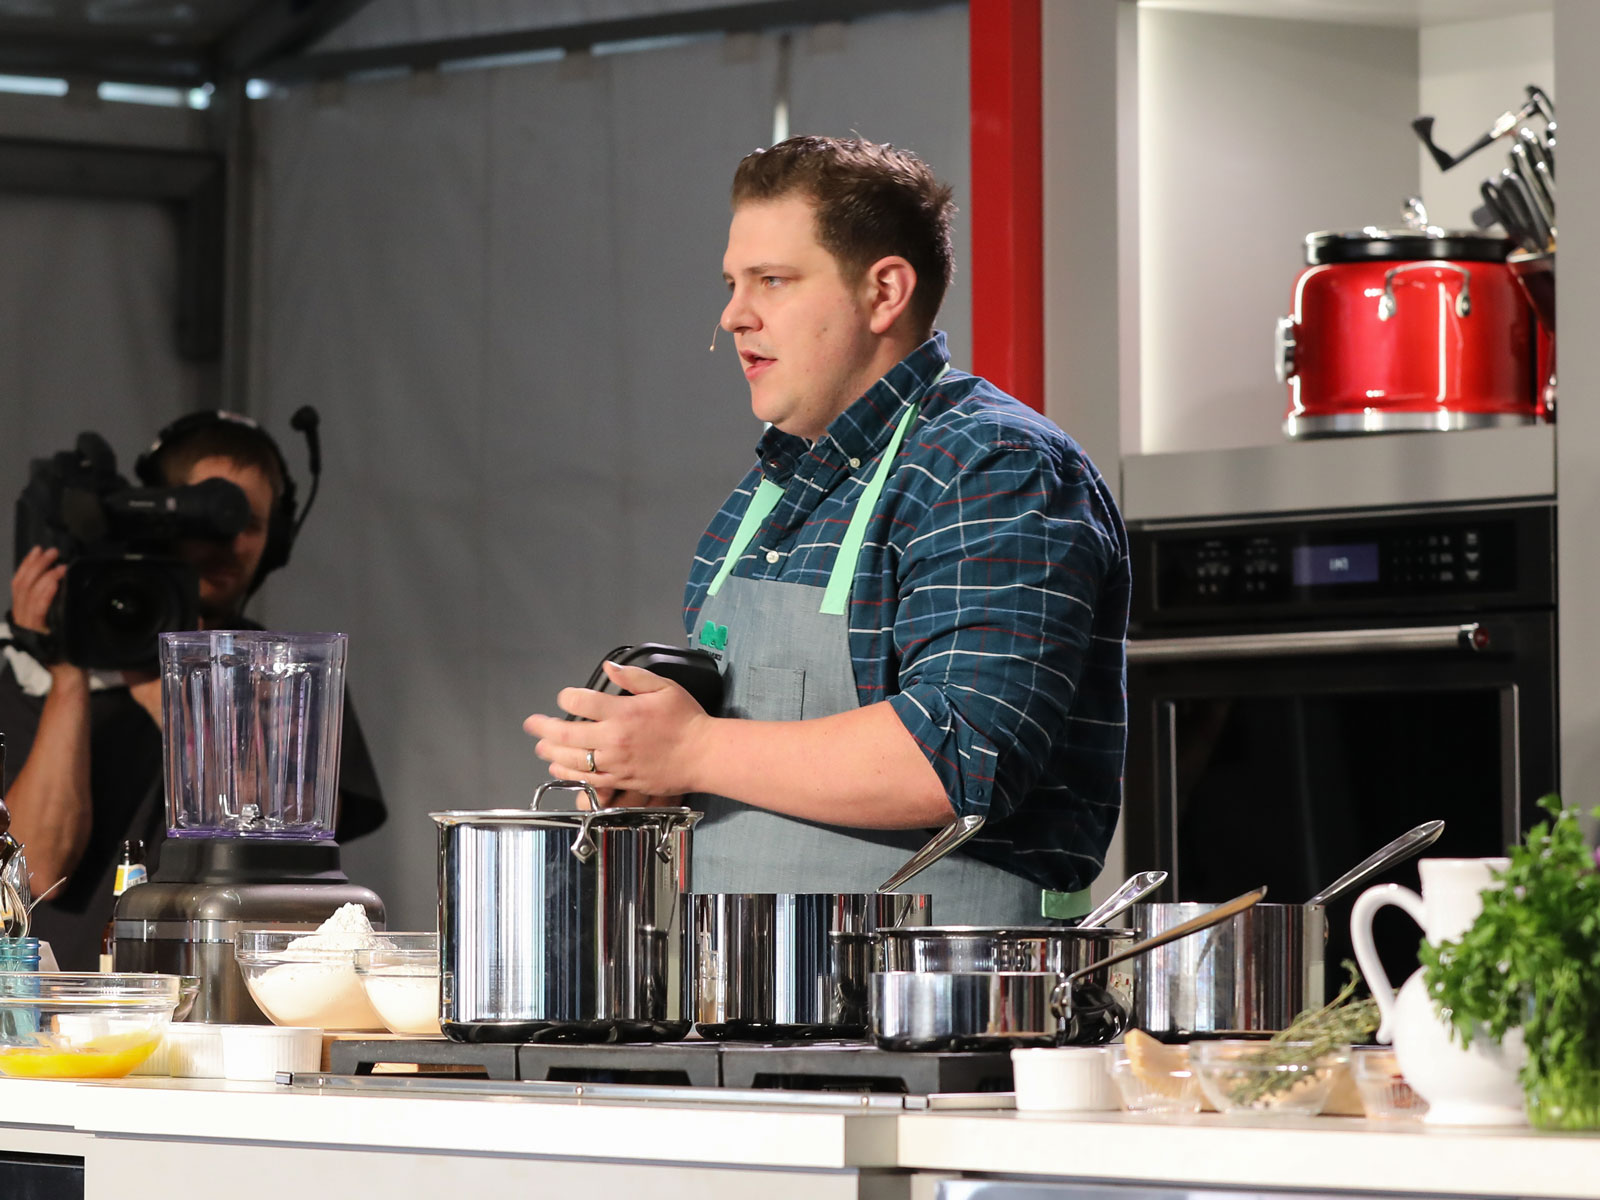 3 Tips for Cooking Restaurant-Quality Pasta at Home from 'Top Chef' Winner Joe Flamm